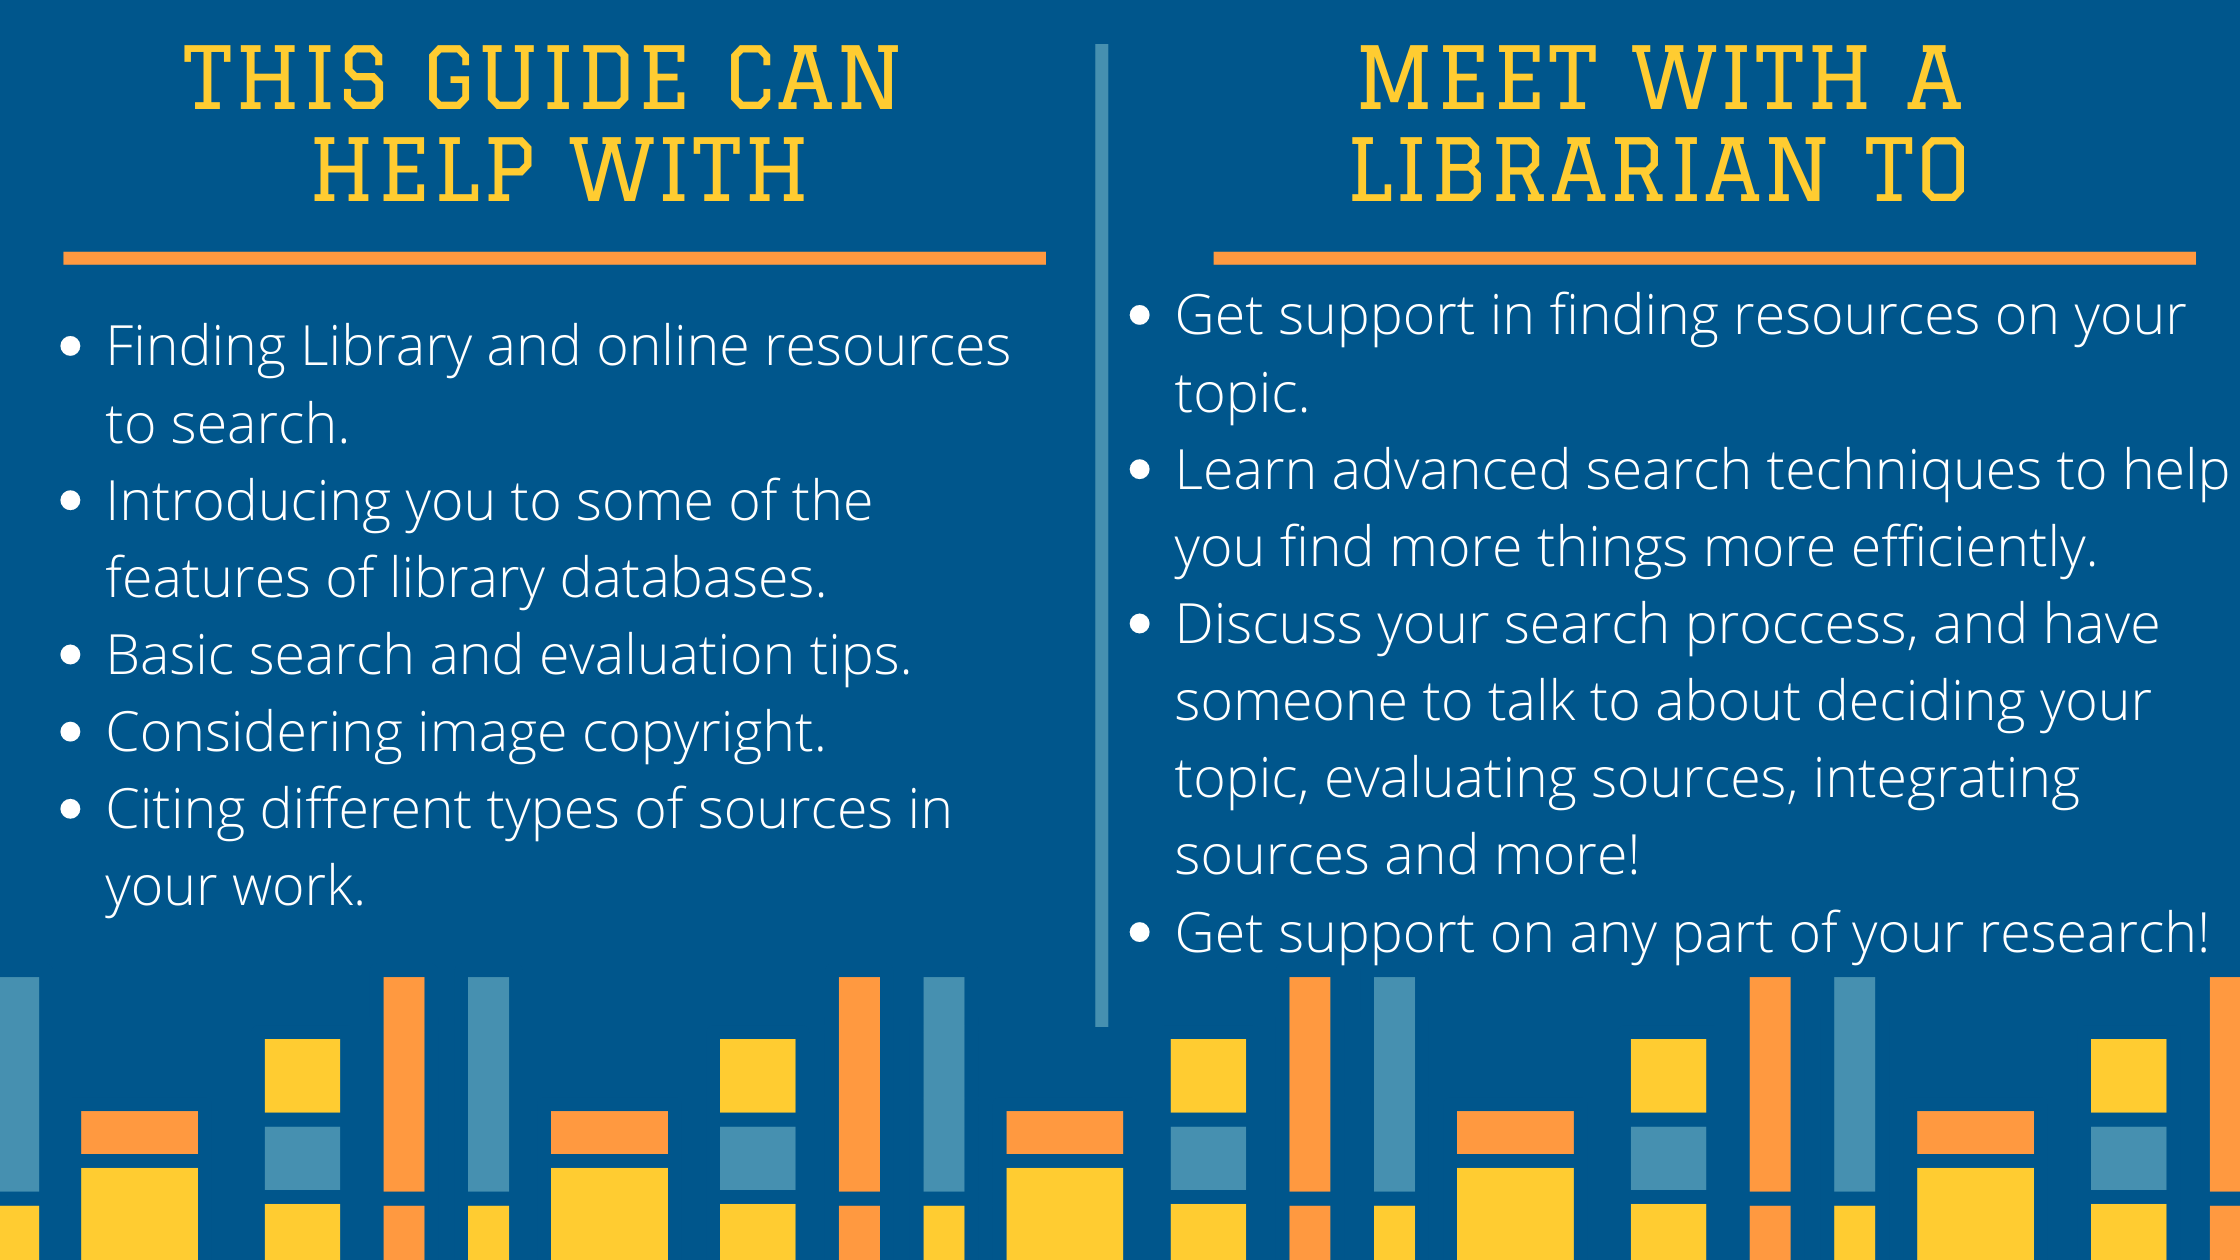 This guide can help with: Finding Library and online resources to search. Introducing you to some of the features of library databases. Basic search and evaluation tips. Considering image copyright. Citing different types of sources in your work. Meet with a librarian to: Get support in finding resources on your topic. Learn advanced search techniques to help you find more things more efficiently. Discuss your search proccess, and have someone to talk to about deciding your topic, evaluating sources, integrating sources and more! Get support on any part of your research!